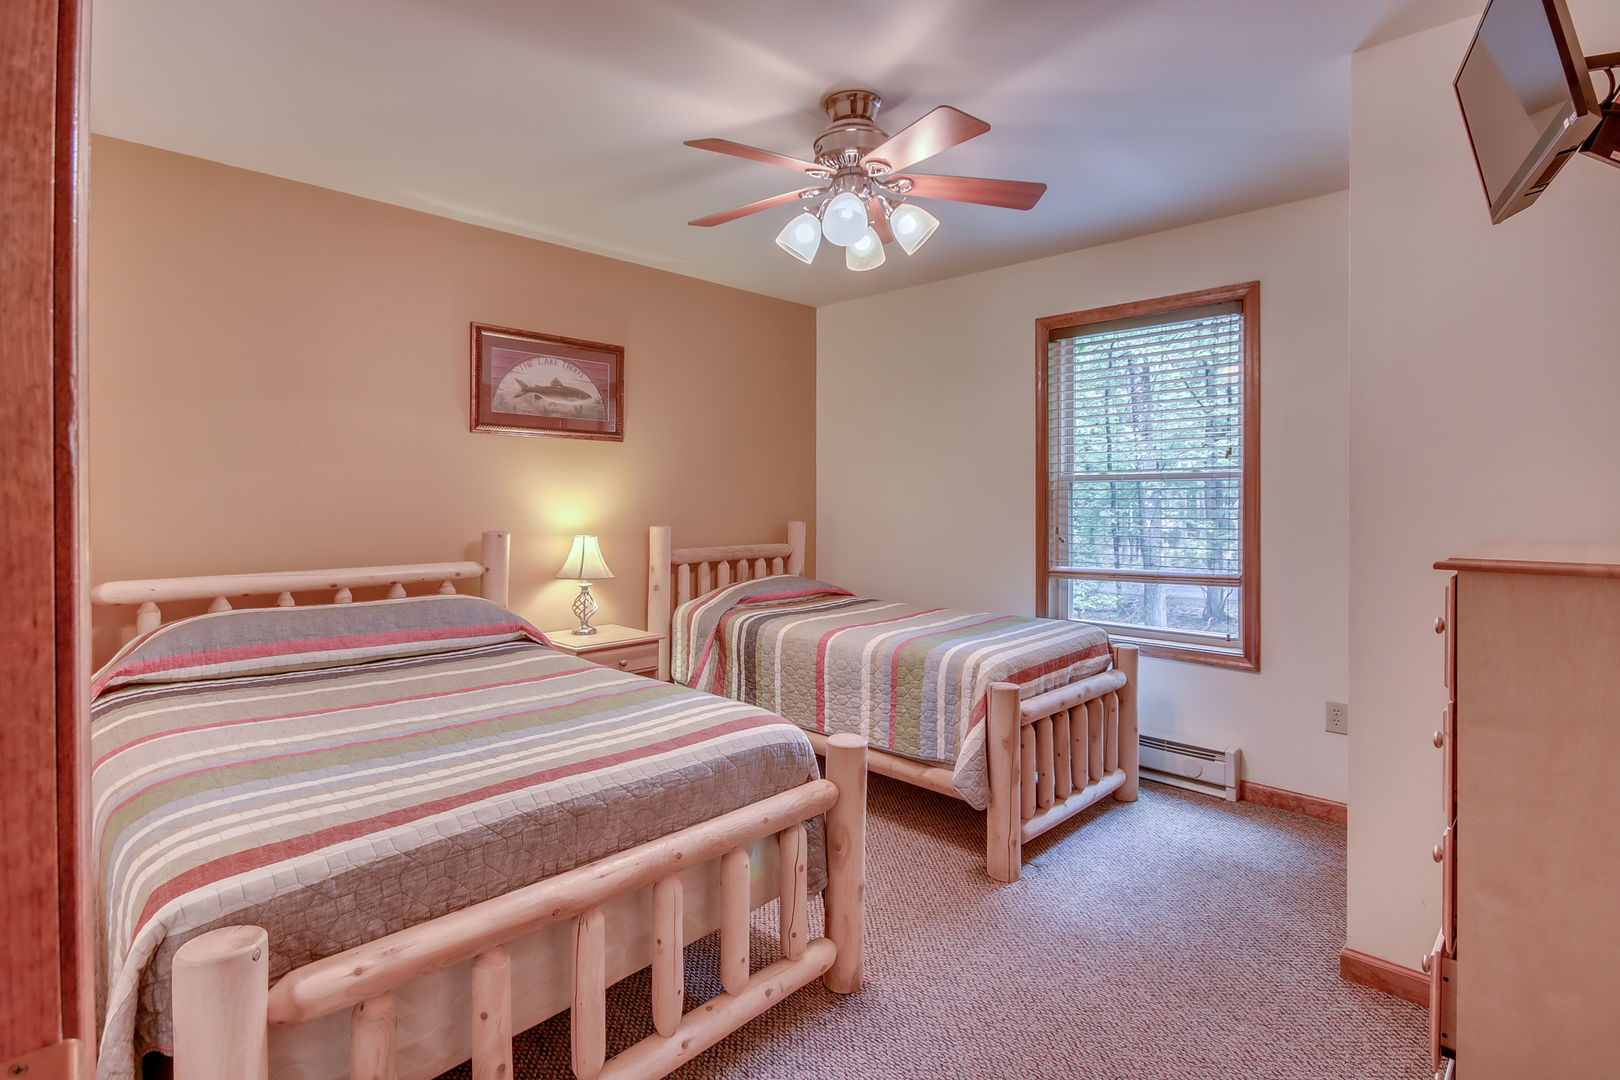 A Photo of a Bedroom in Our Pocono Mountain Lakefront Rental with Two Beds.